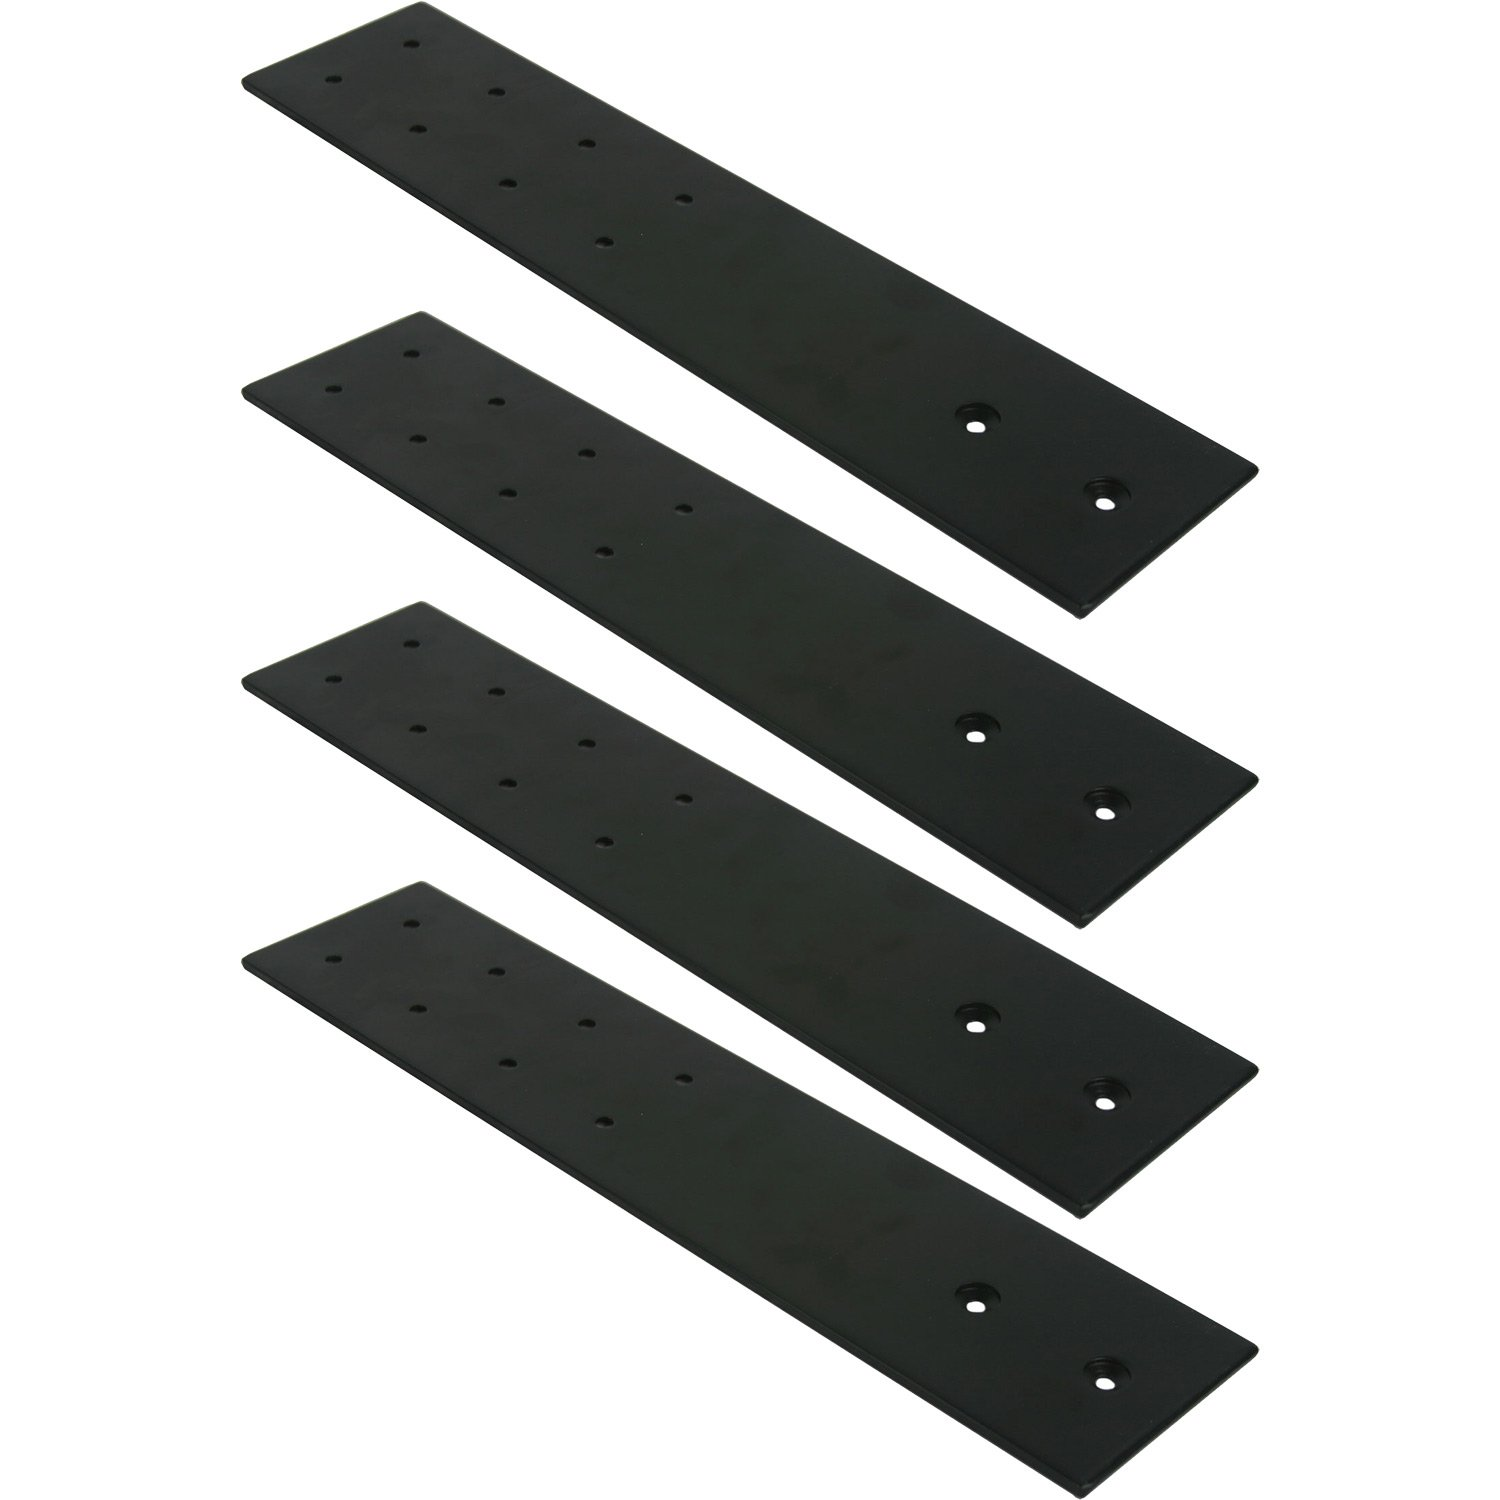 FastCap 09394-BL 3-1/2-inches x 16-inches Black SpeedBrace Stealth 300LB, 4-Pack